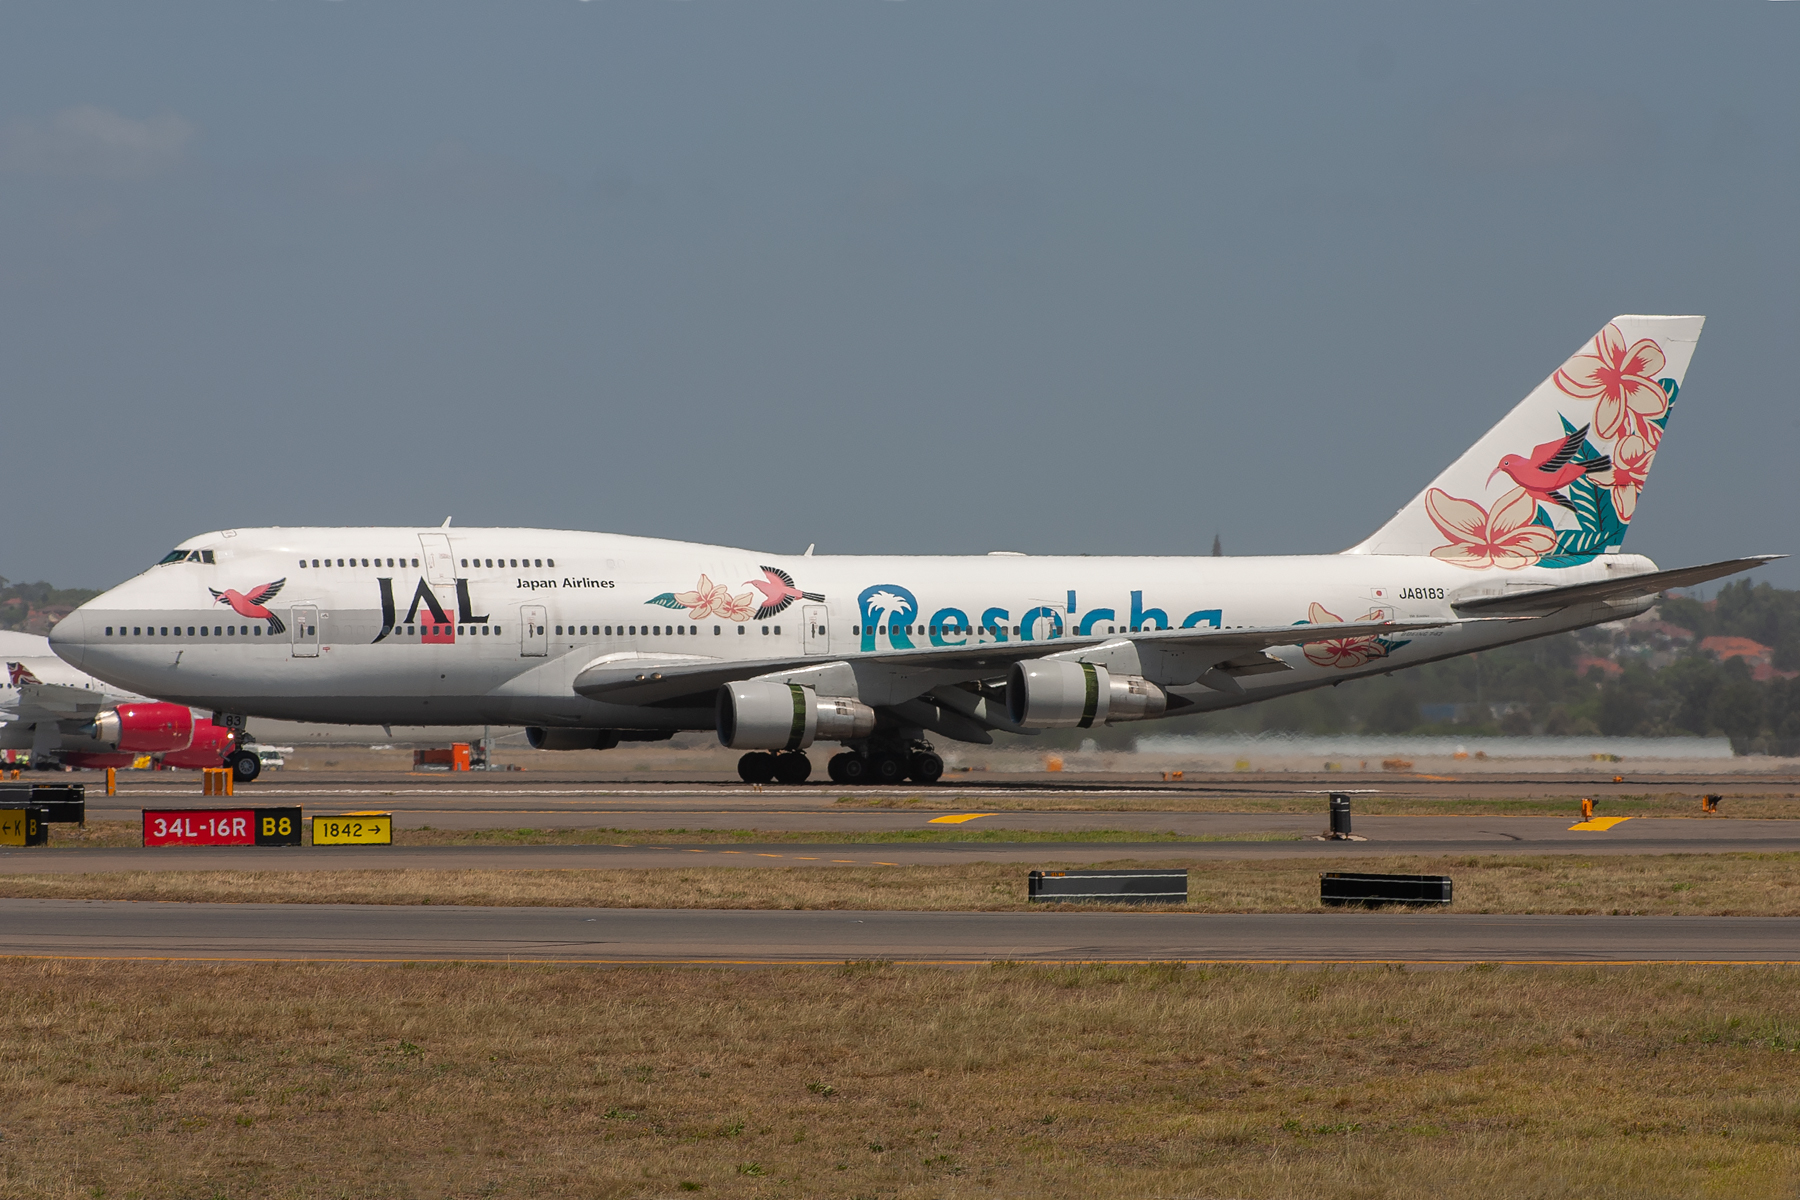 Japan Airlines Boeing 747-300SR JA8183 at Kingsford Smith